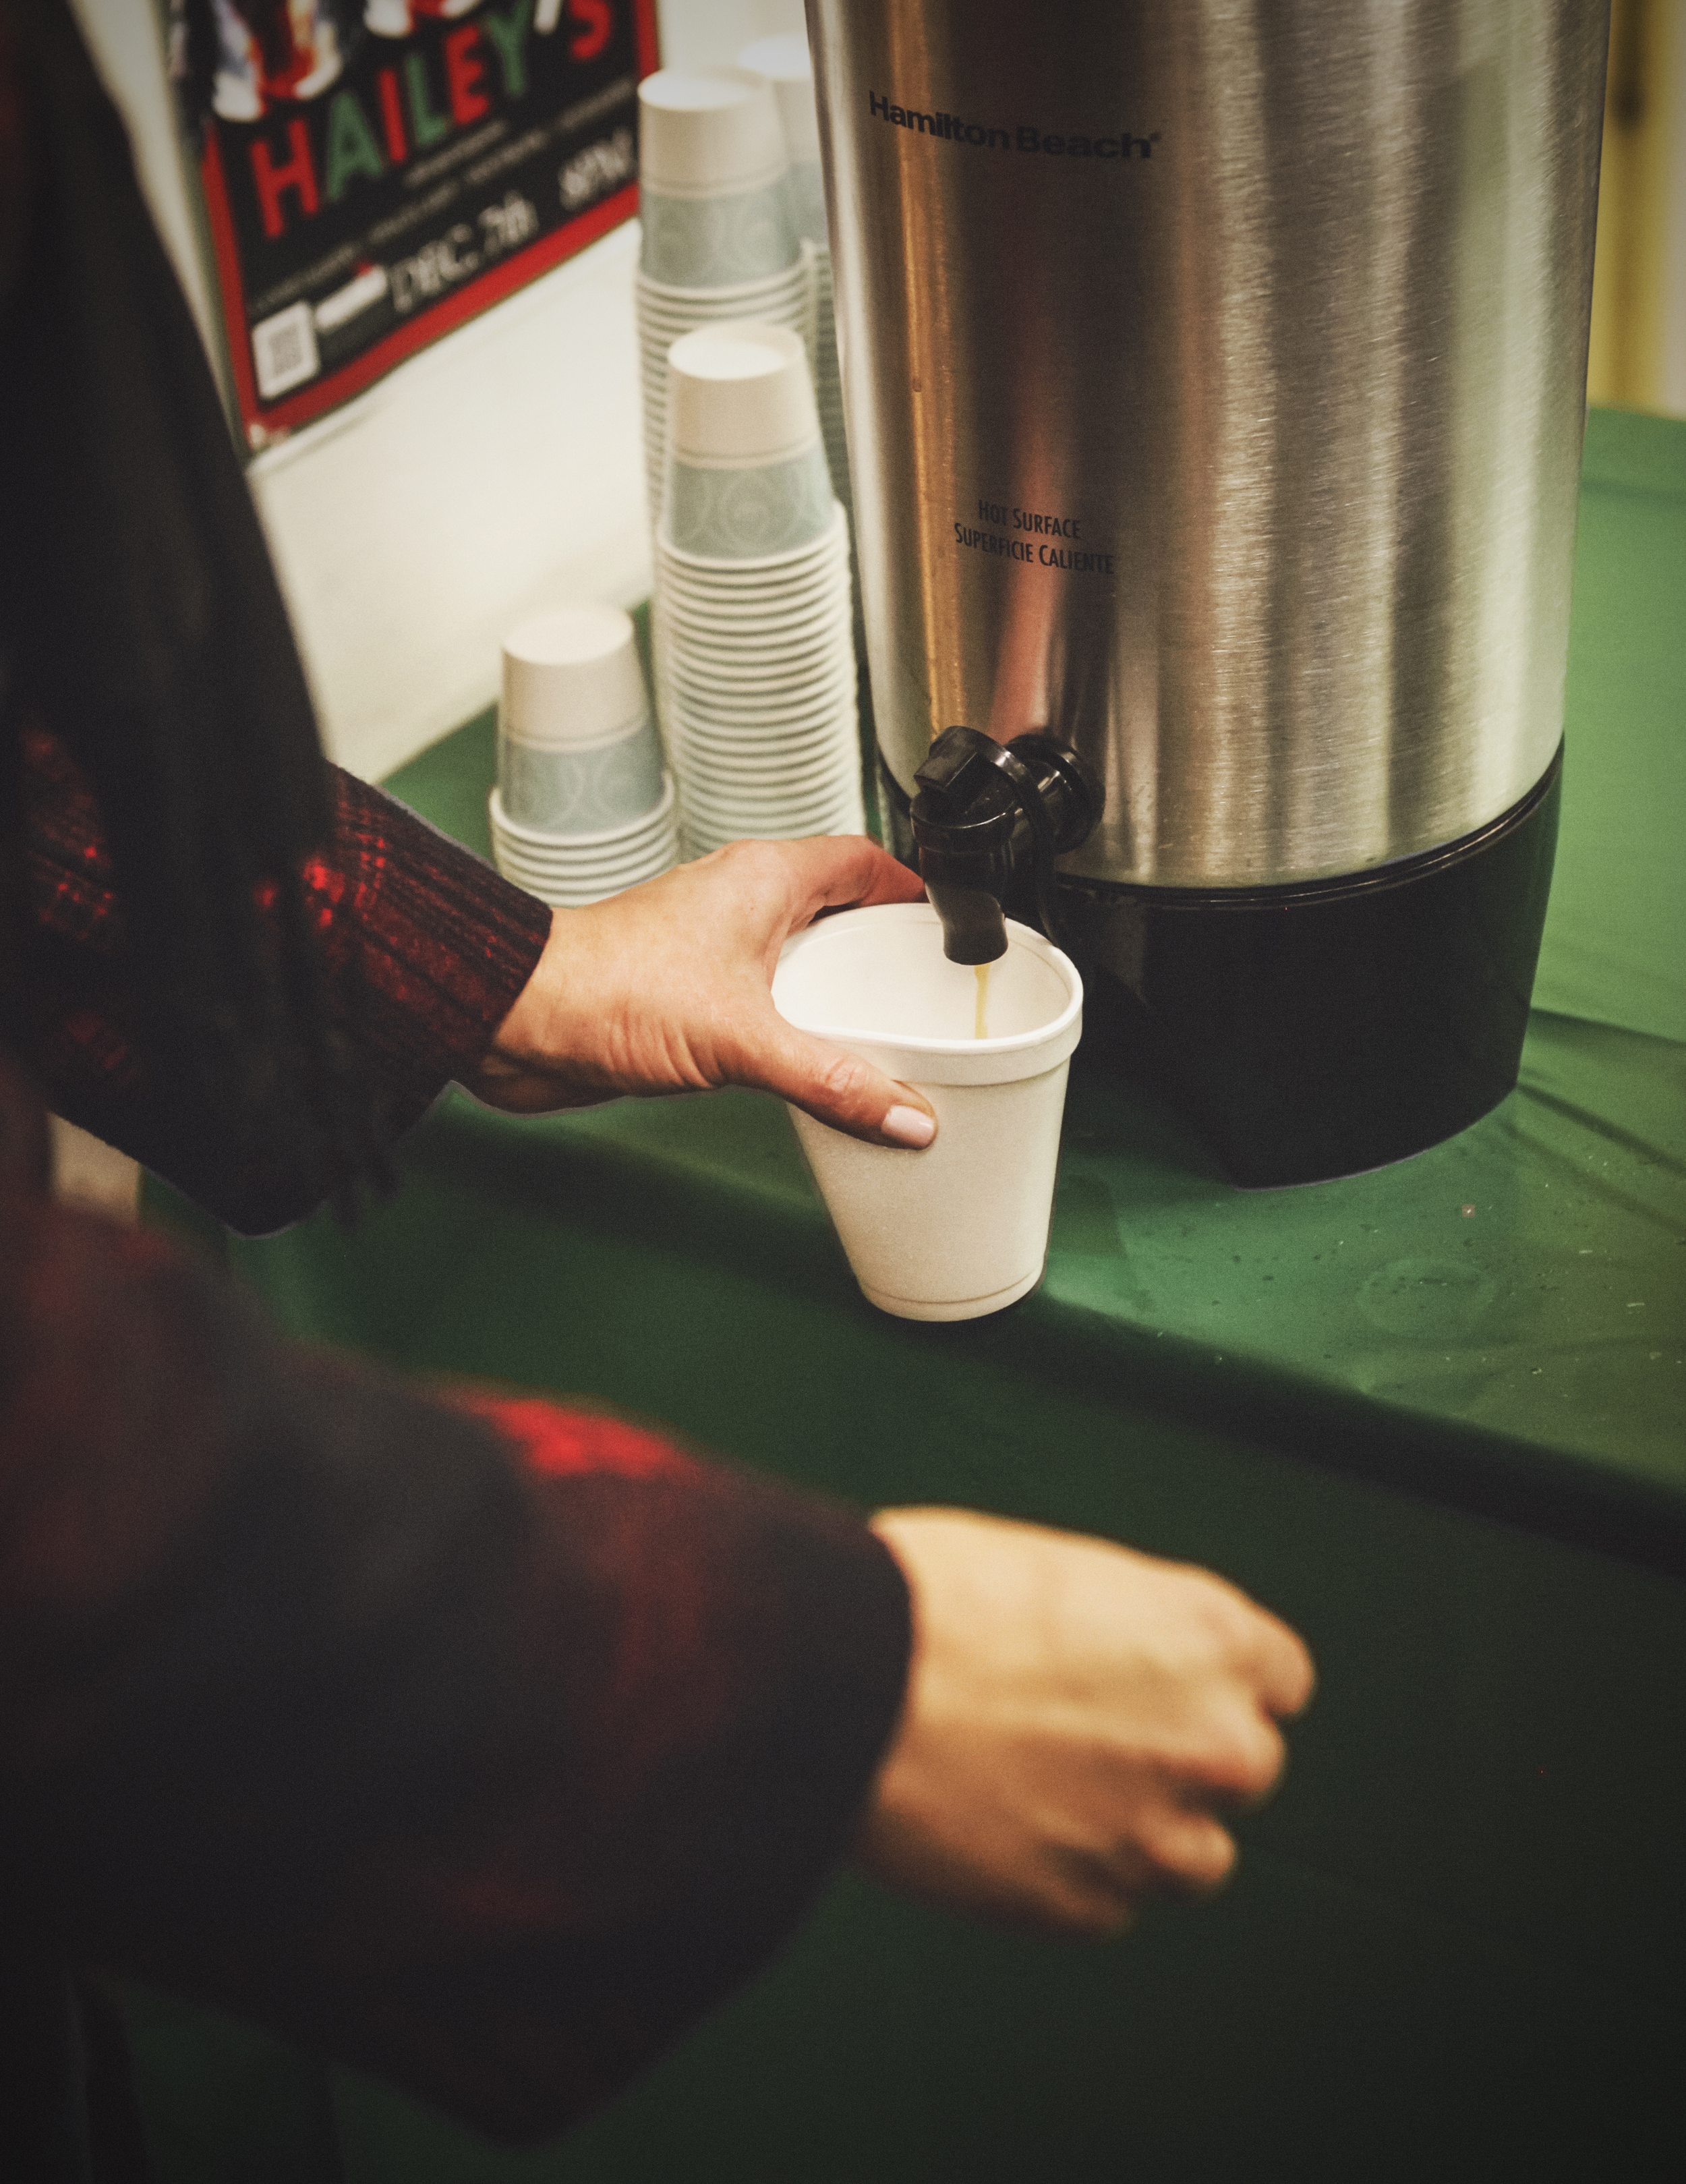 We loved the wassail at Recycled Books, what was your favorite?